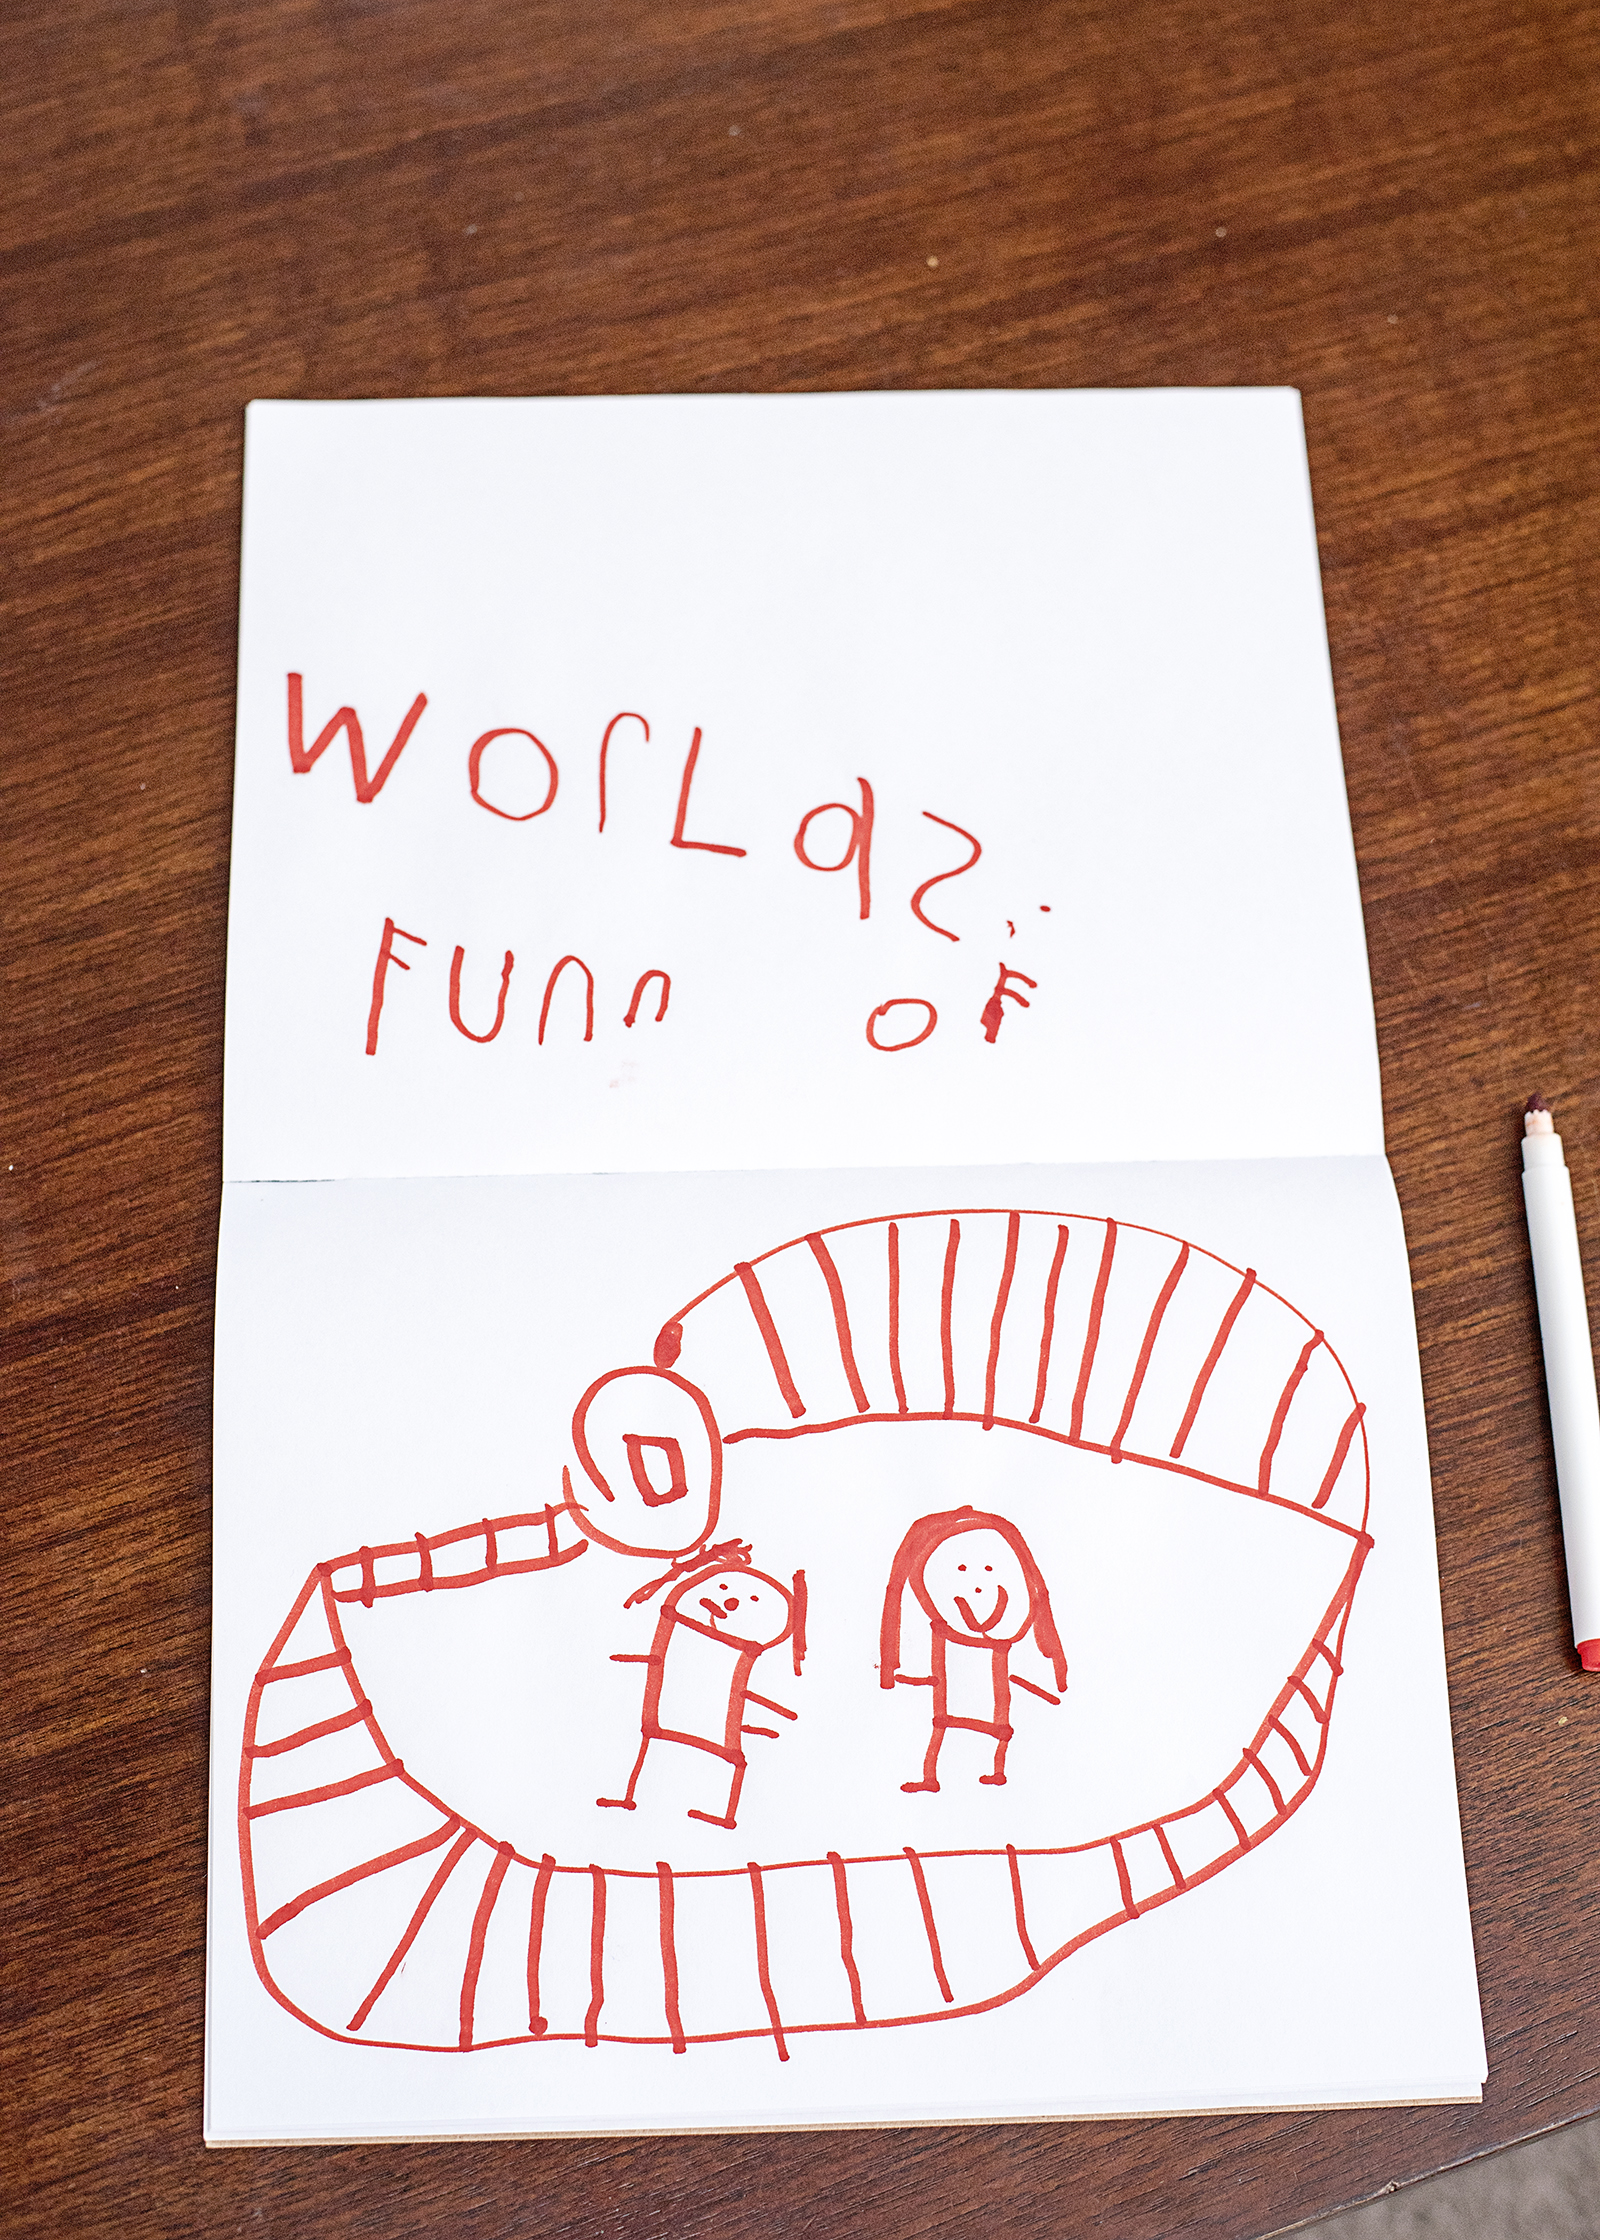 Through the Eyes of Andrea: A Day at World's of Fun